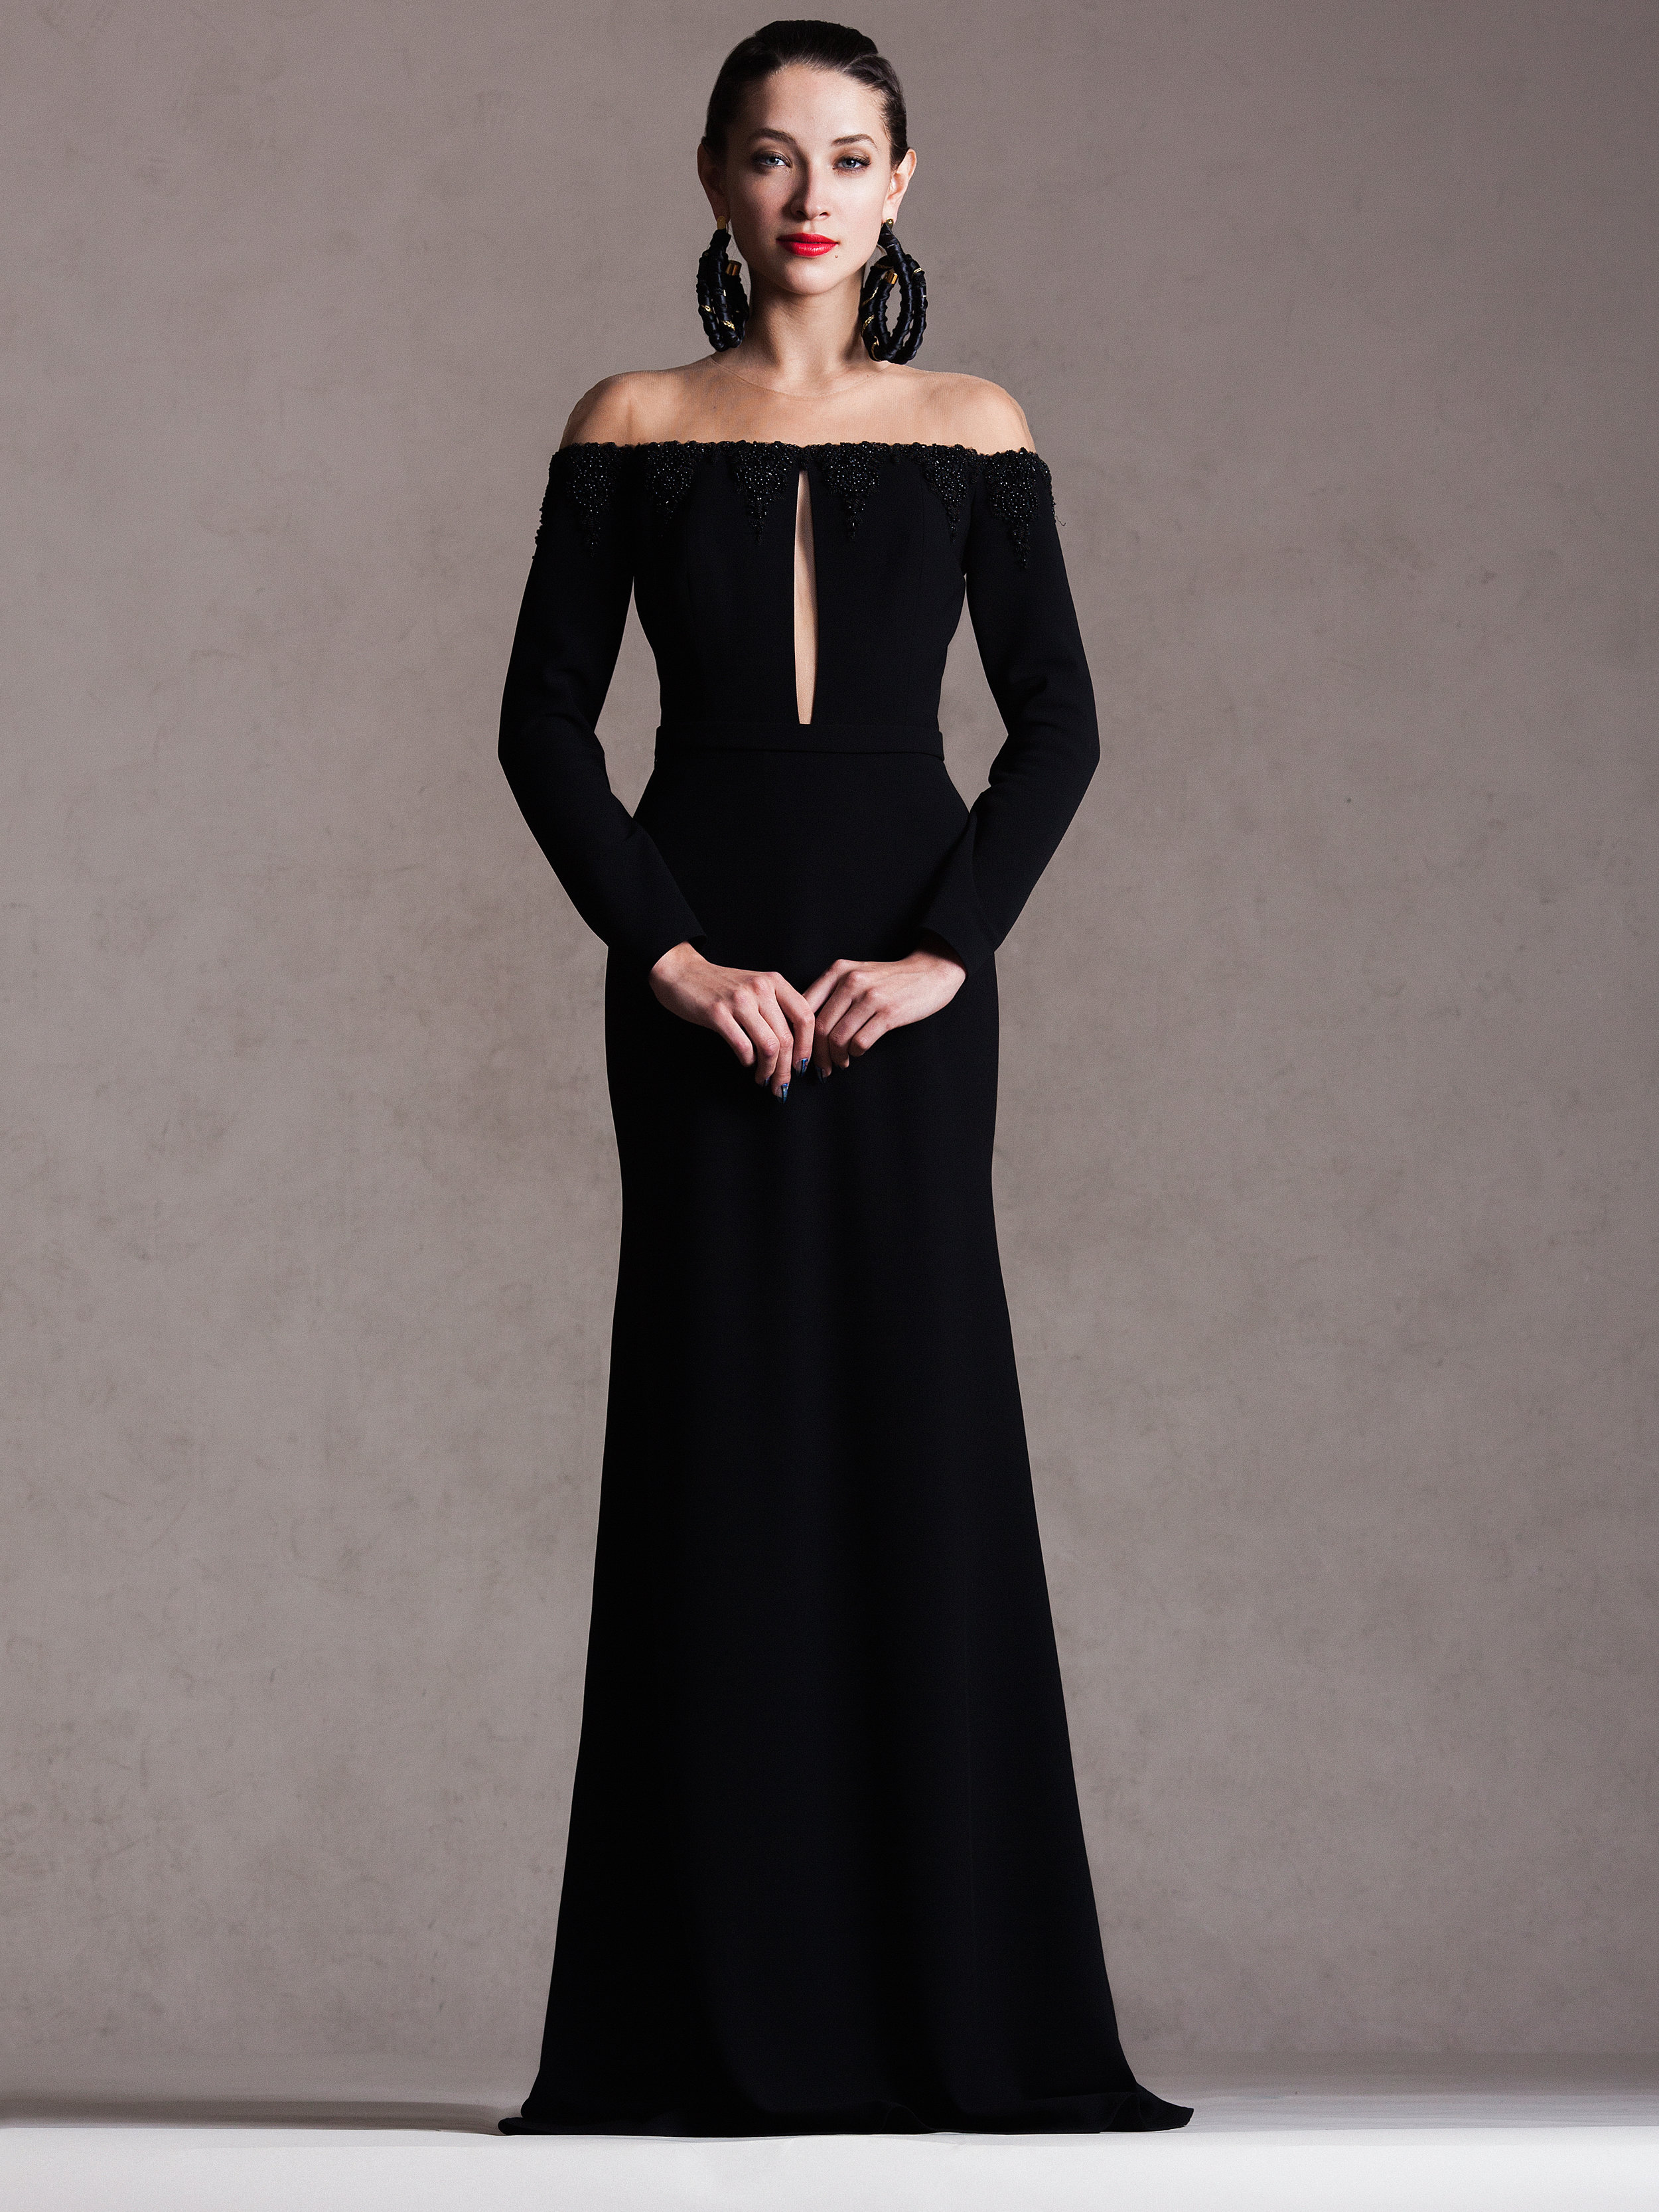 Lucian-Matis-Lookbook-20150204-017c.jpg